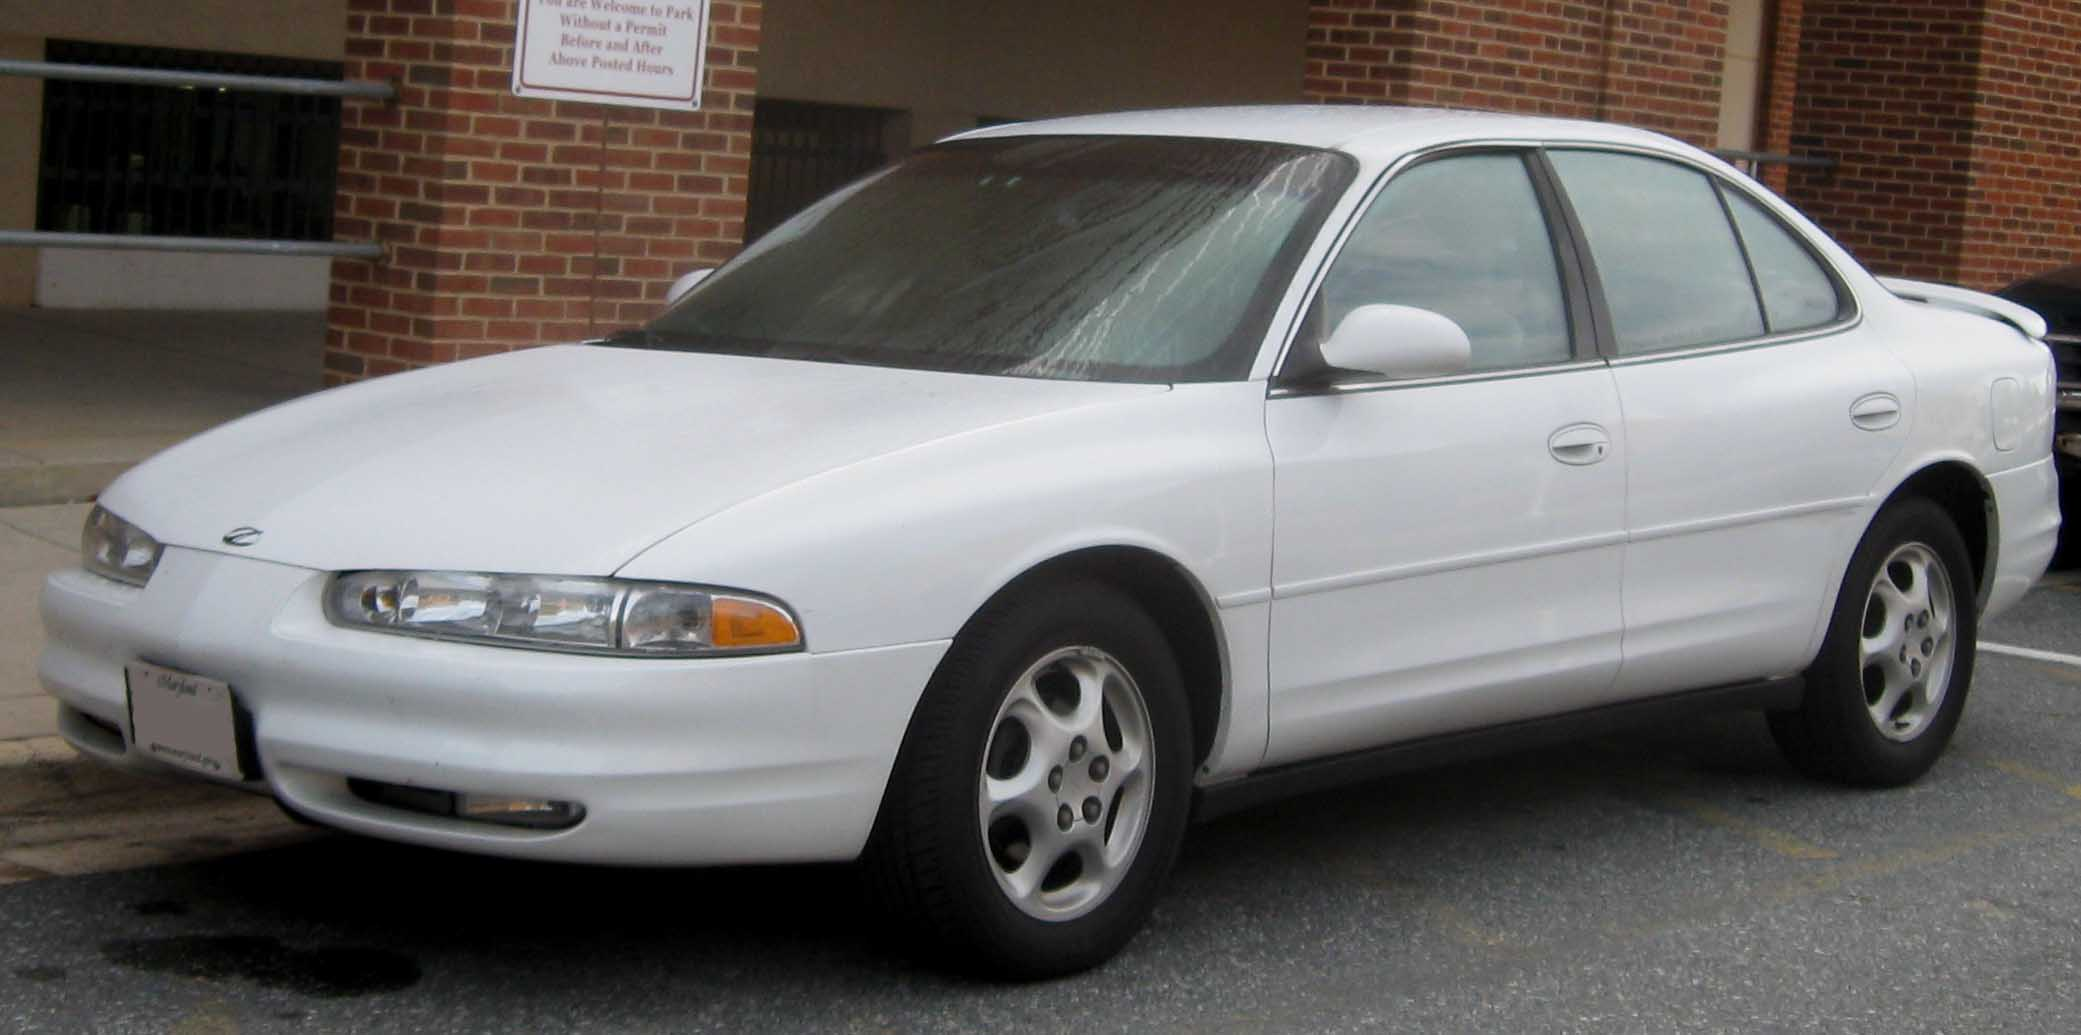 oldsmobile intrigue #1